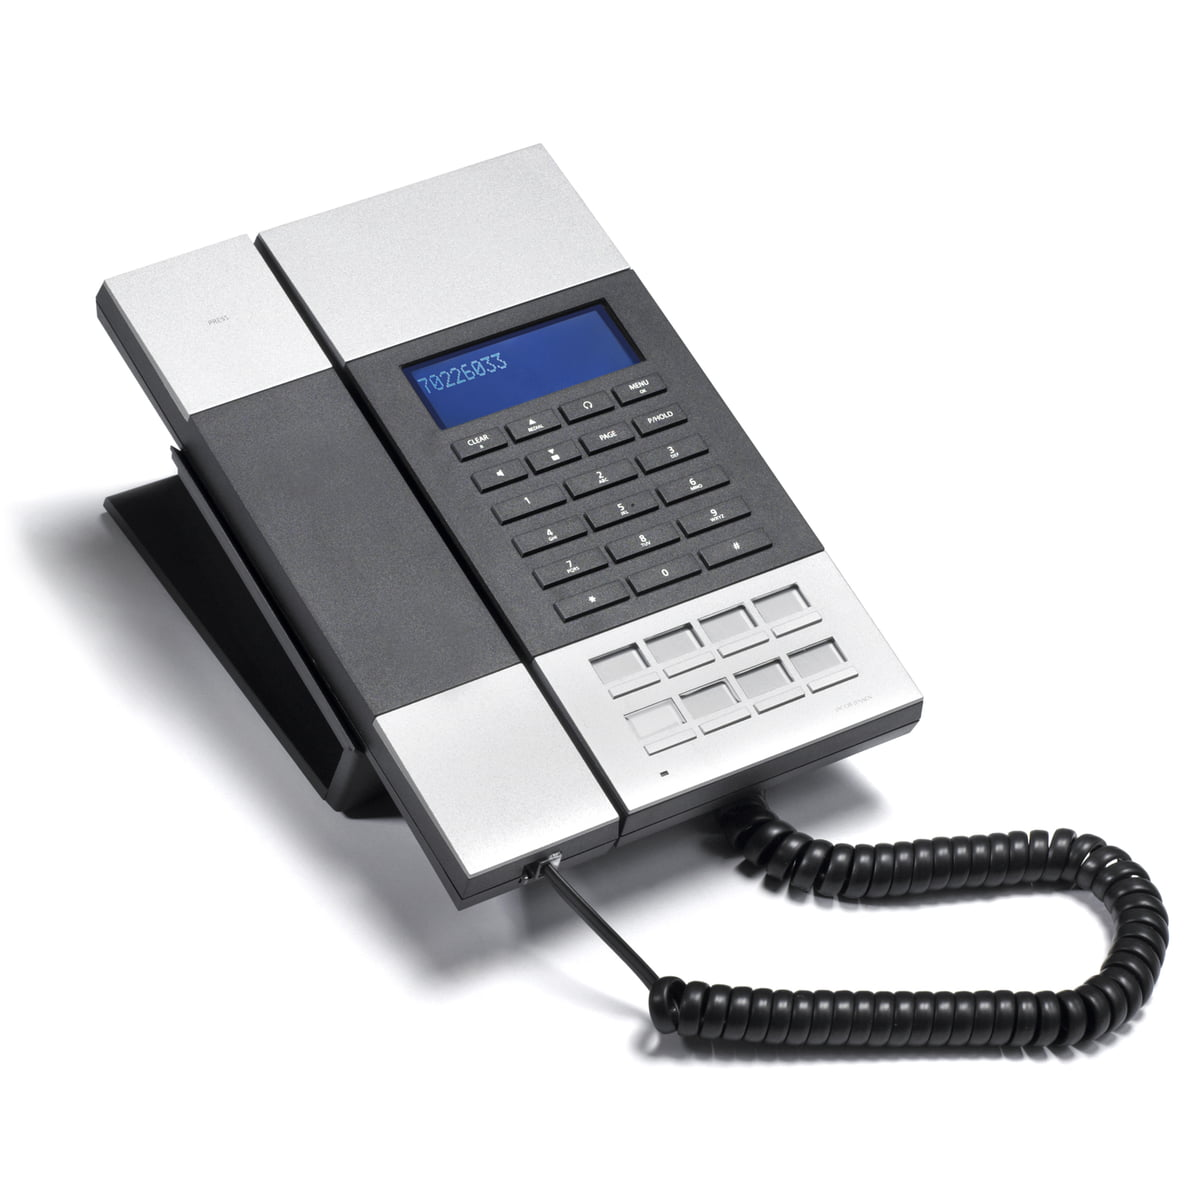 The Jacob Jensen Telephone 50 in the home design shop